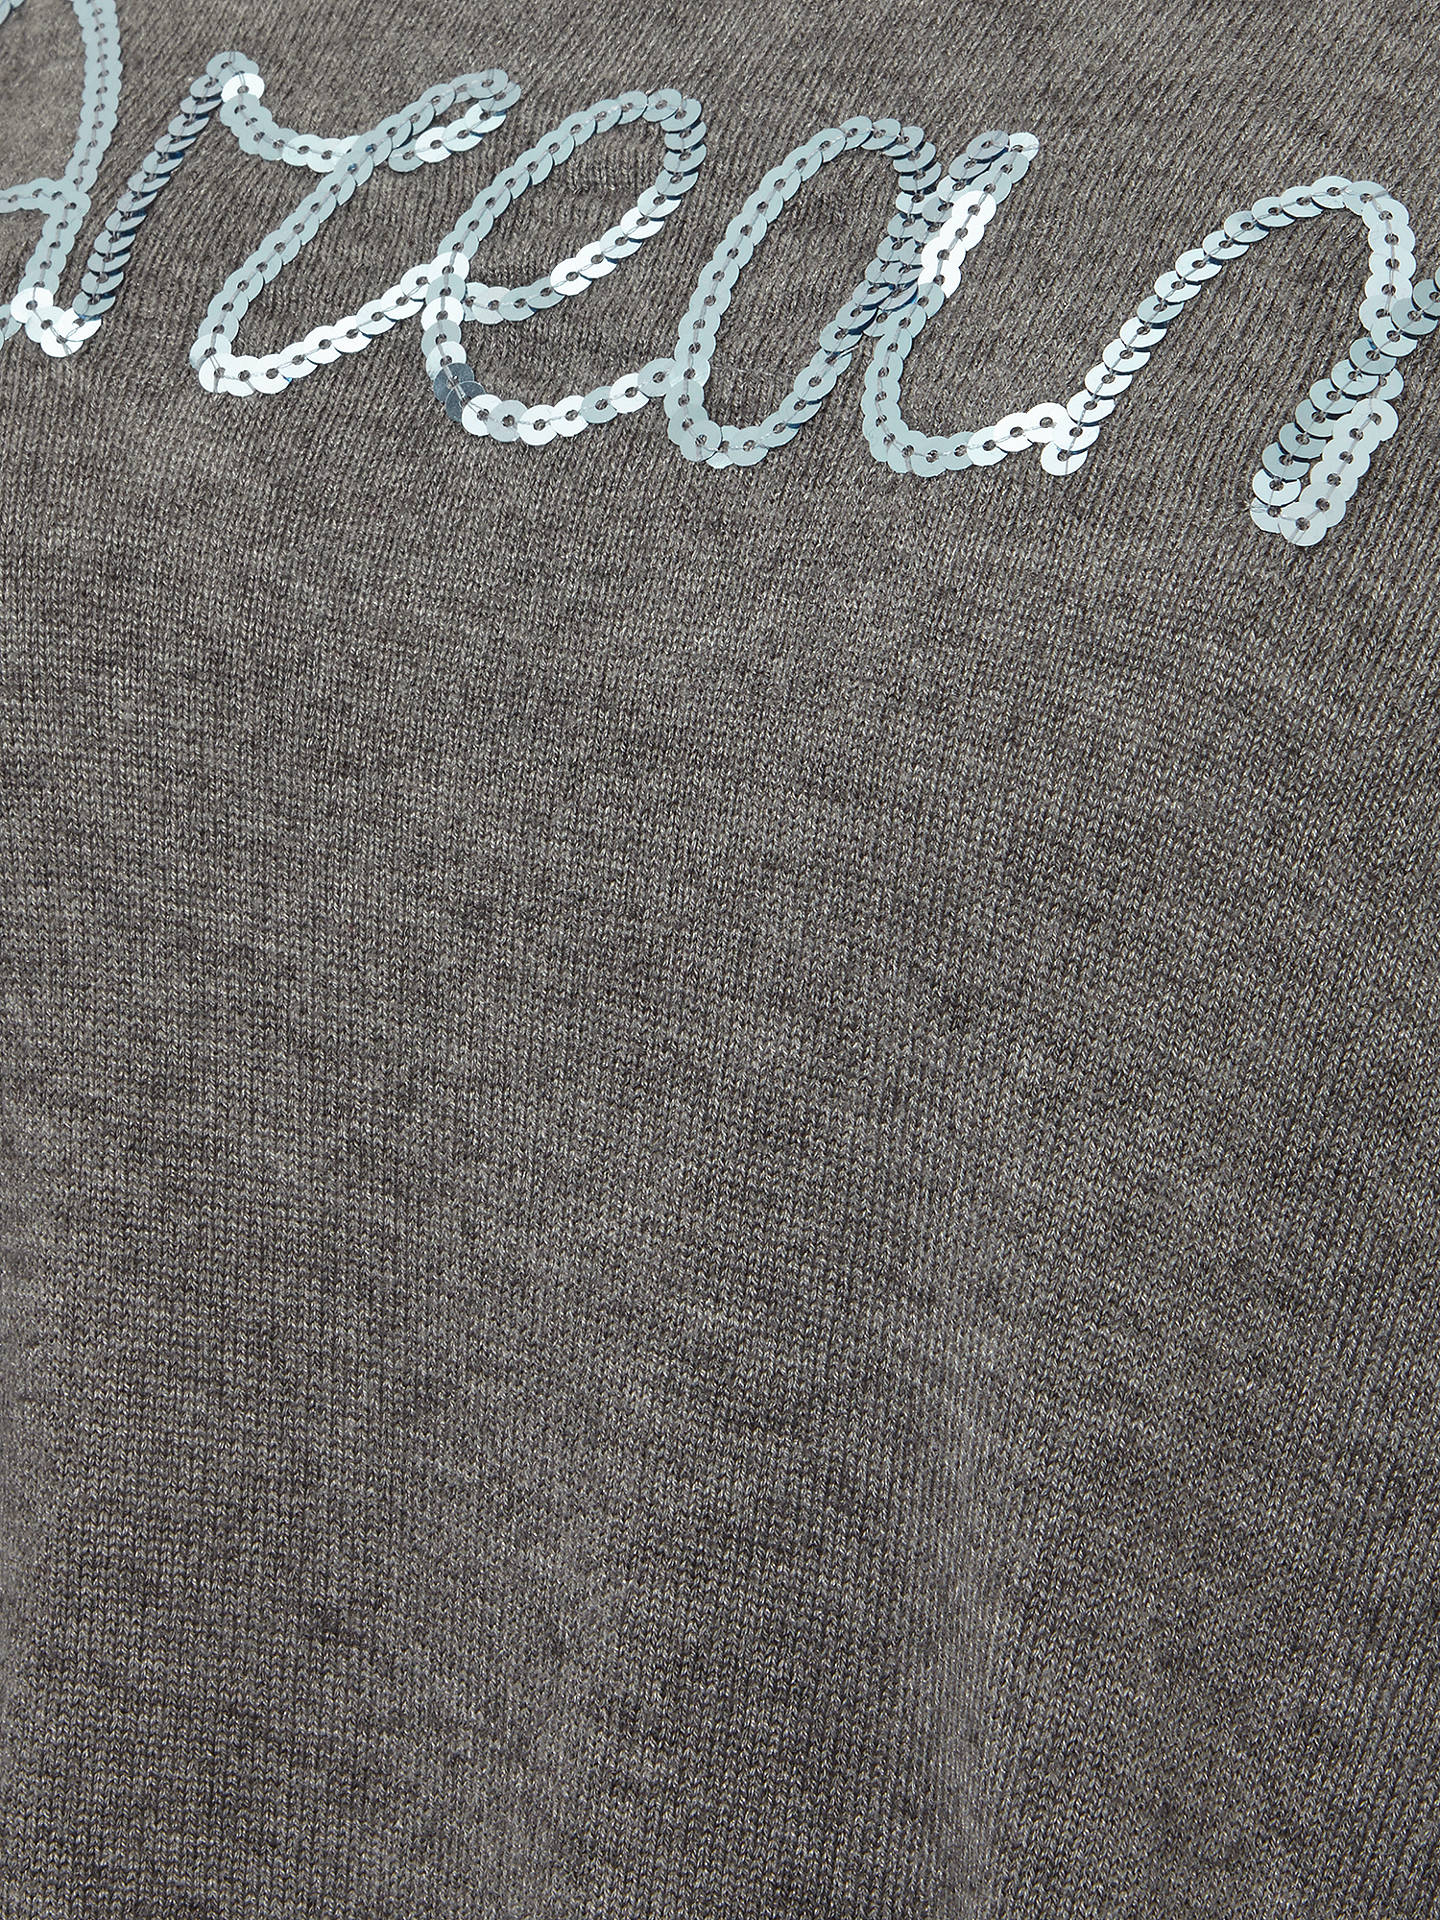 BuyPhase Eight Daisy Sparkle Jumper, Grey Marl, 8 Online at johnlewis.com